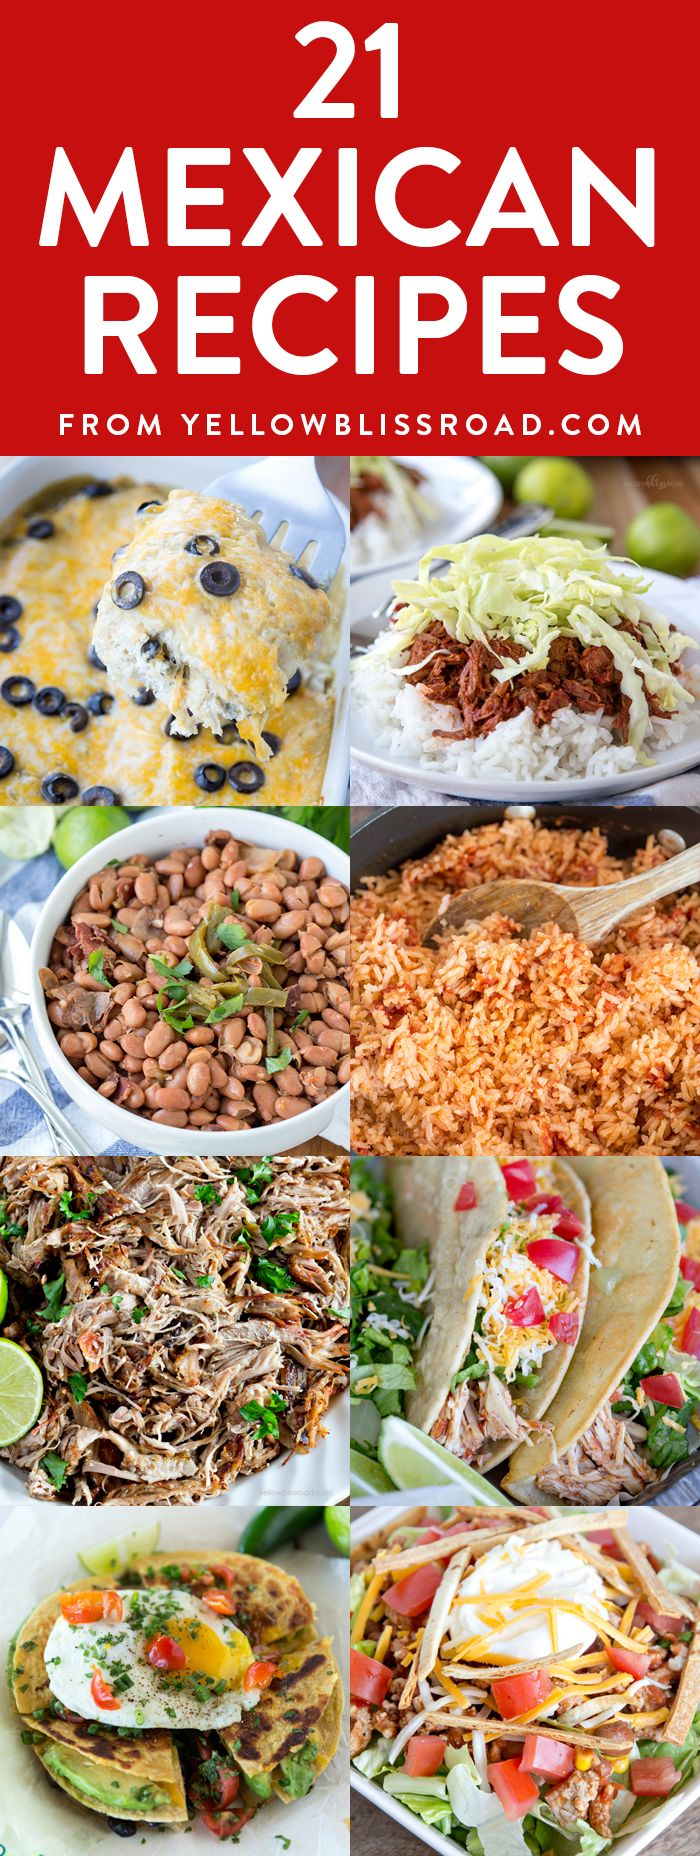 Mexican Food is my all -time favorite type of food, and this time of year we seem to make it a lot! I have a lot of authentic dishes here on the site, plus some really delicious takes on old favorites. Any of these recipes would be welcome at your Cinco de Mayo celebration. Enjoy! …